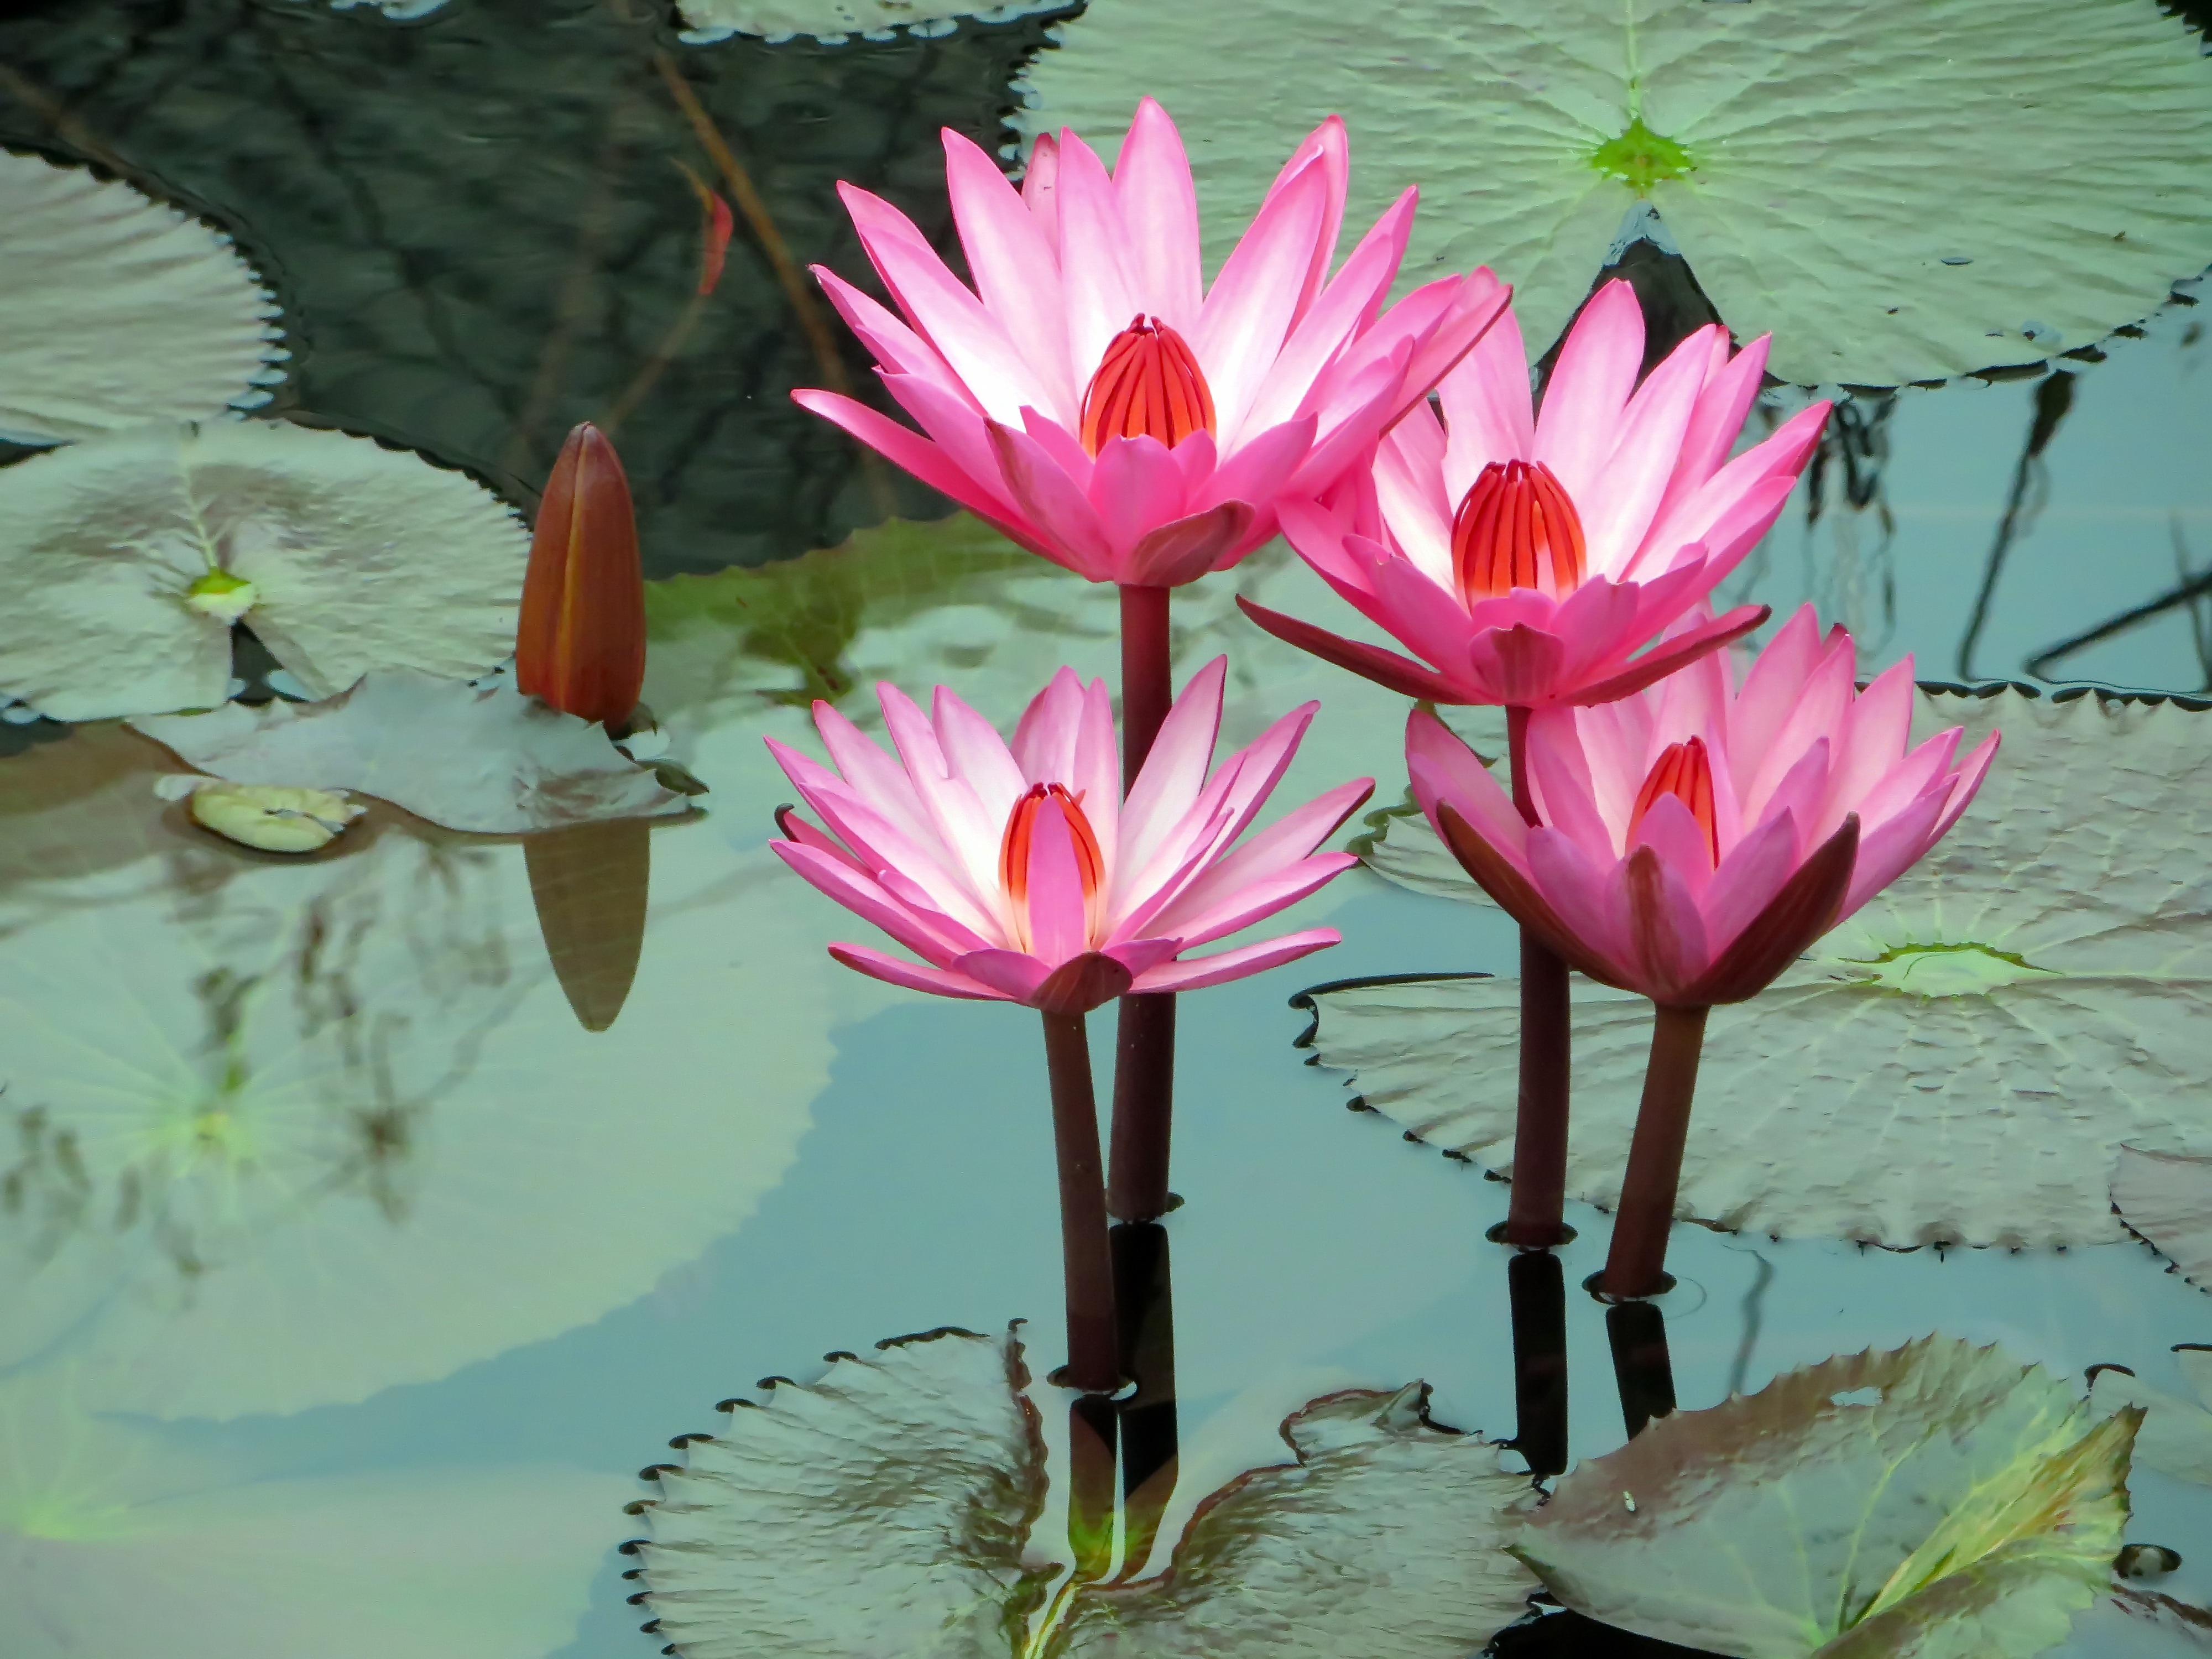 161 Water Lily Hd Wallpapers Background Images Wallpaper Abyss